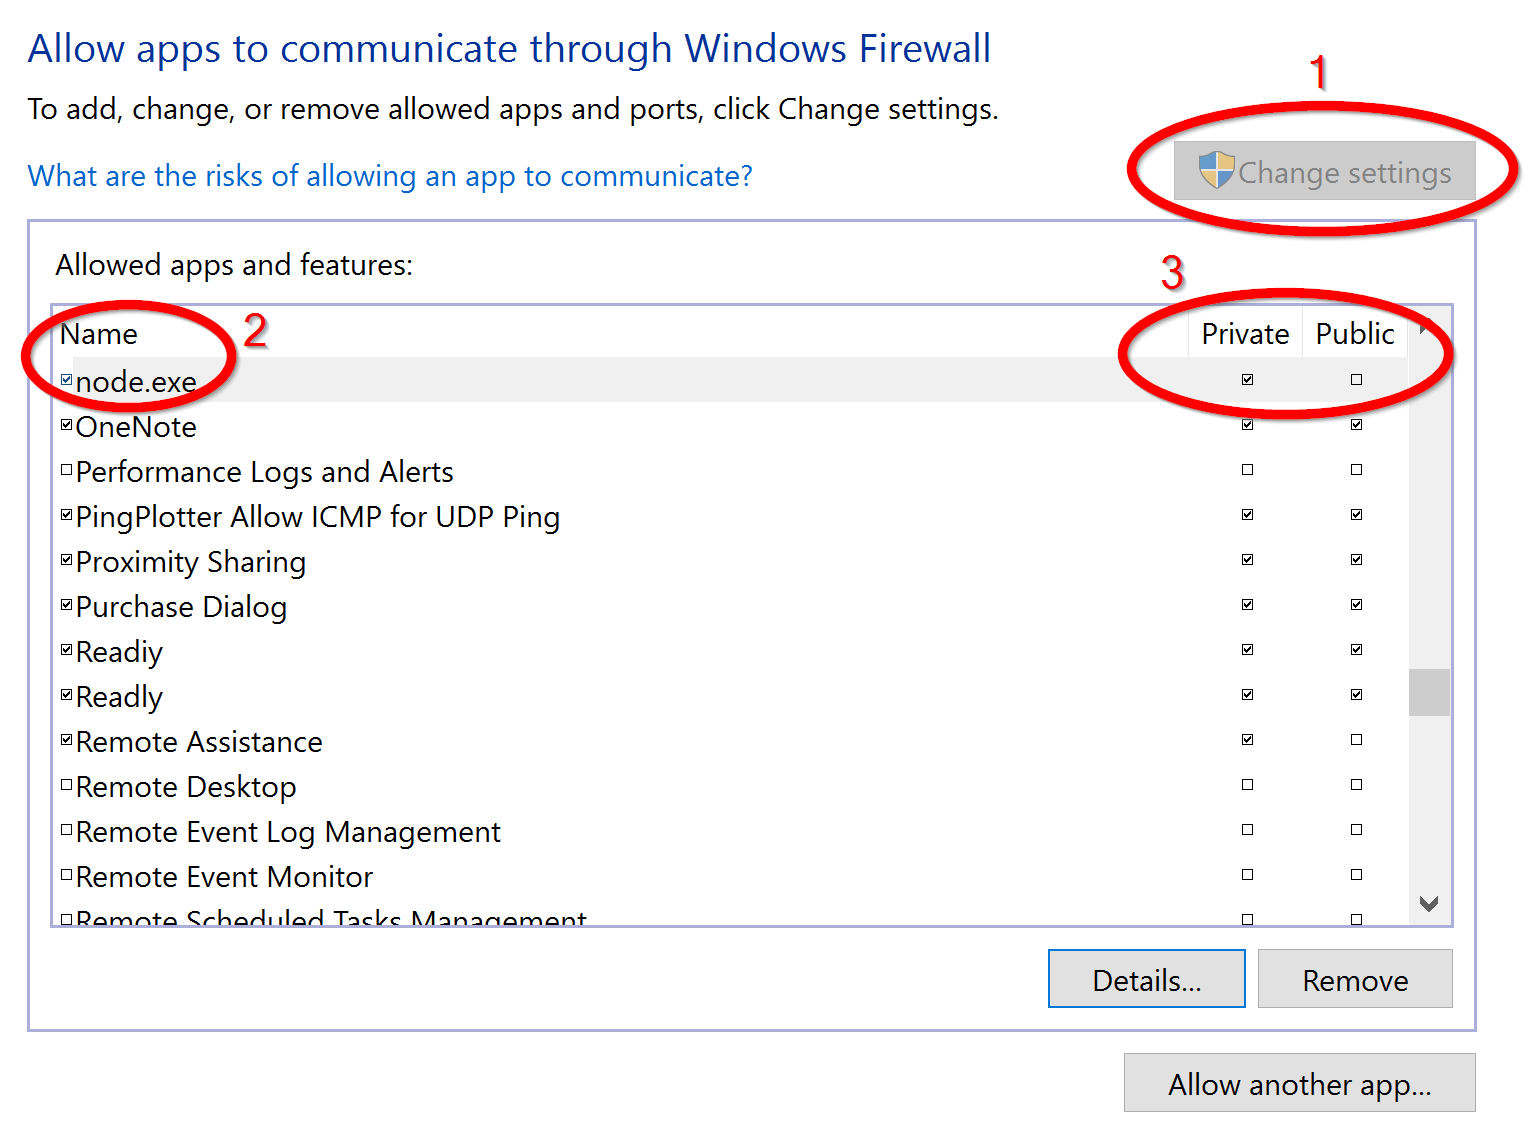 Screenshot of the Windows Firewall settings in Windows 8 or 10